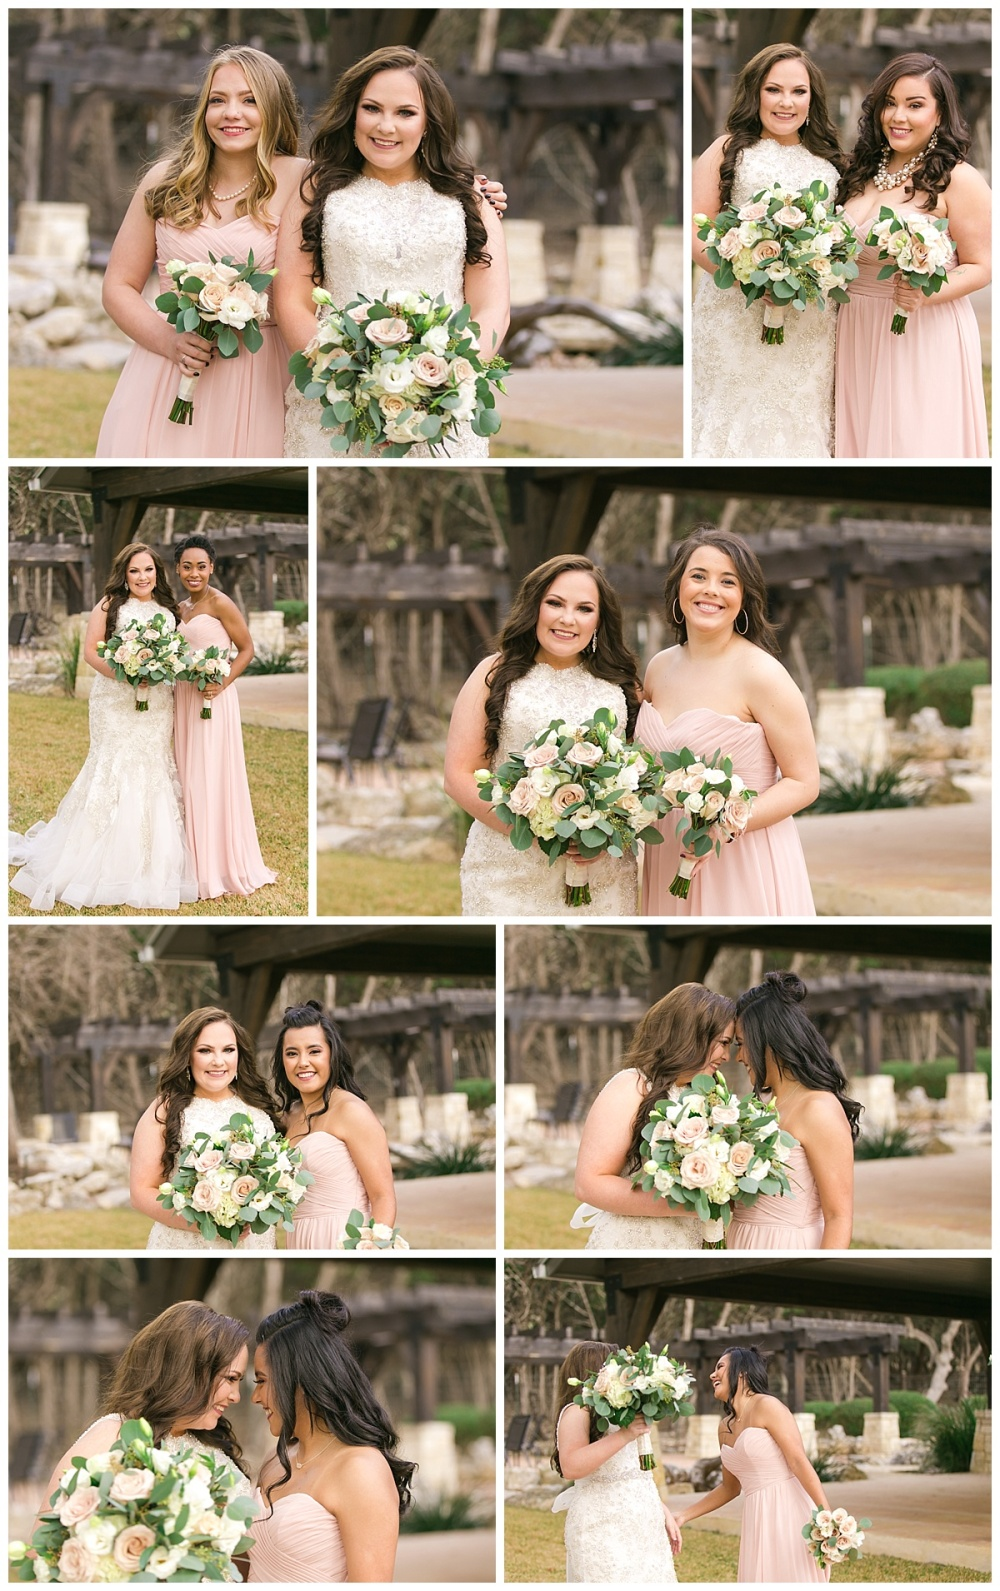 Carly-Barton-Photography-Branded-T-Ranch-Kendalia-Texas-Hill-Country-Wedding_0015.jpg